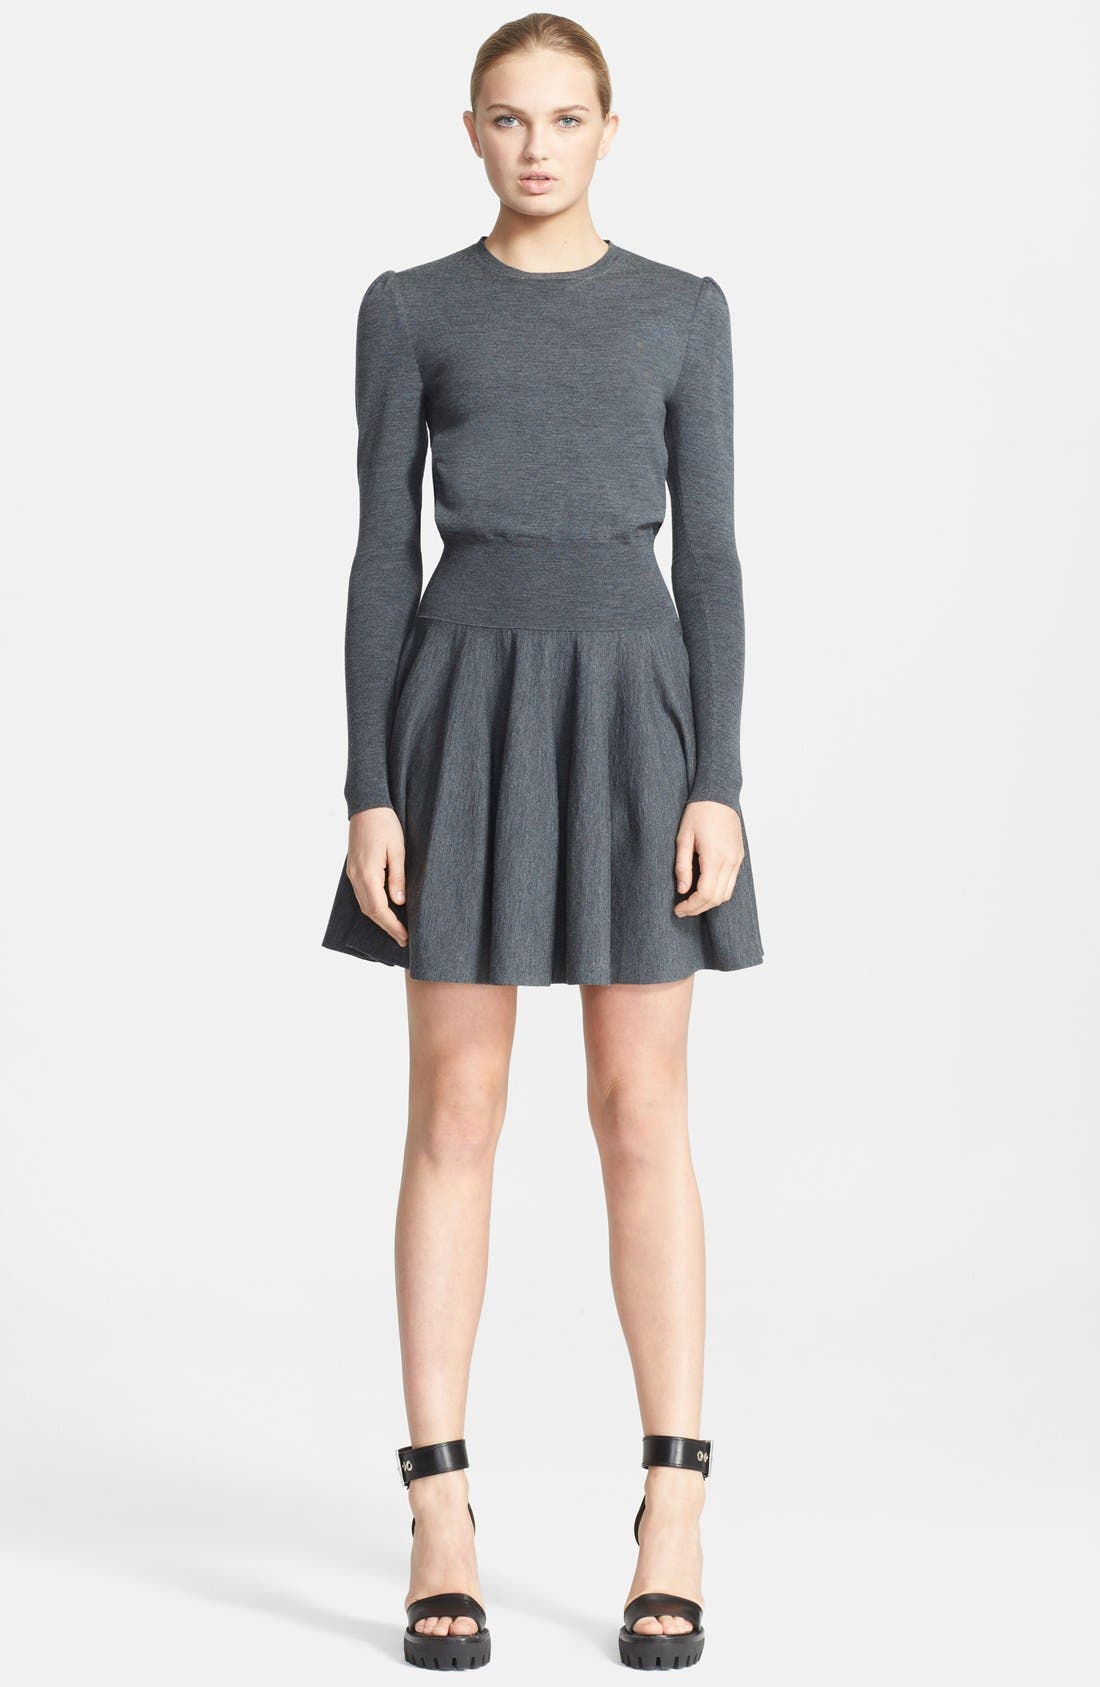 Alternate Image 1 Selected - Alexander McQueen Fit & Flare Knit Dress